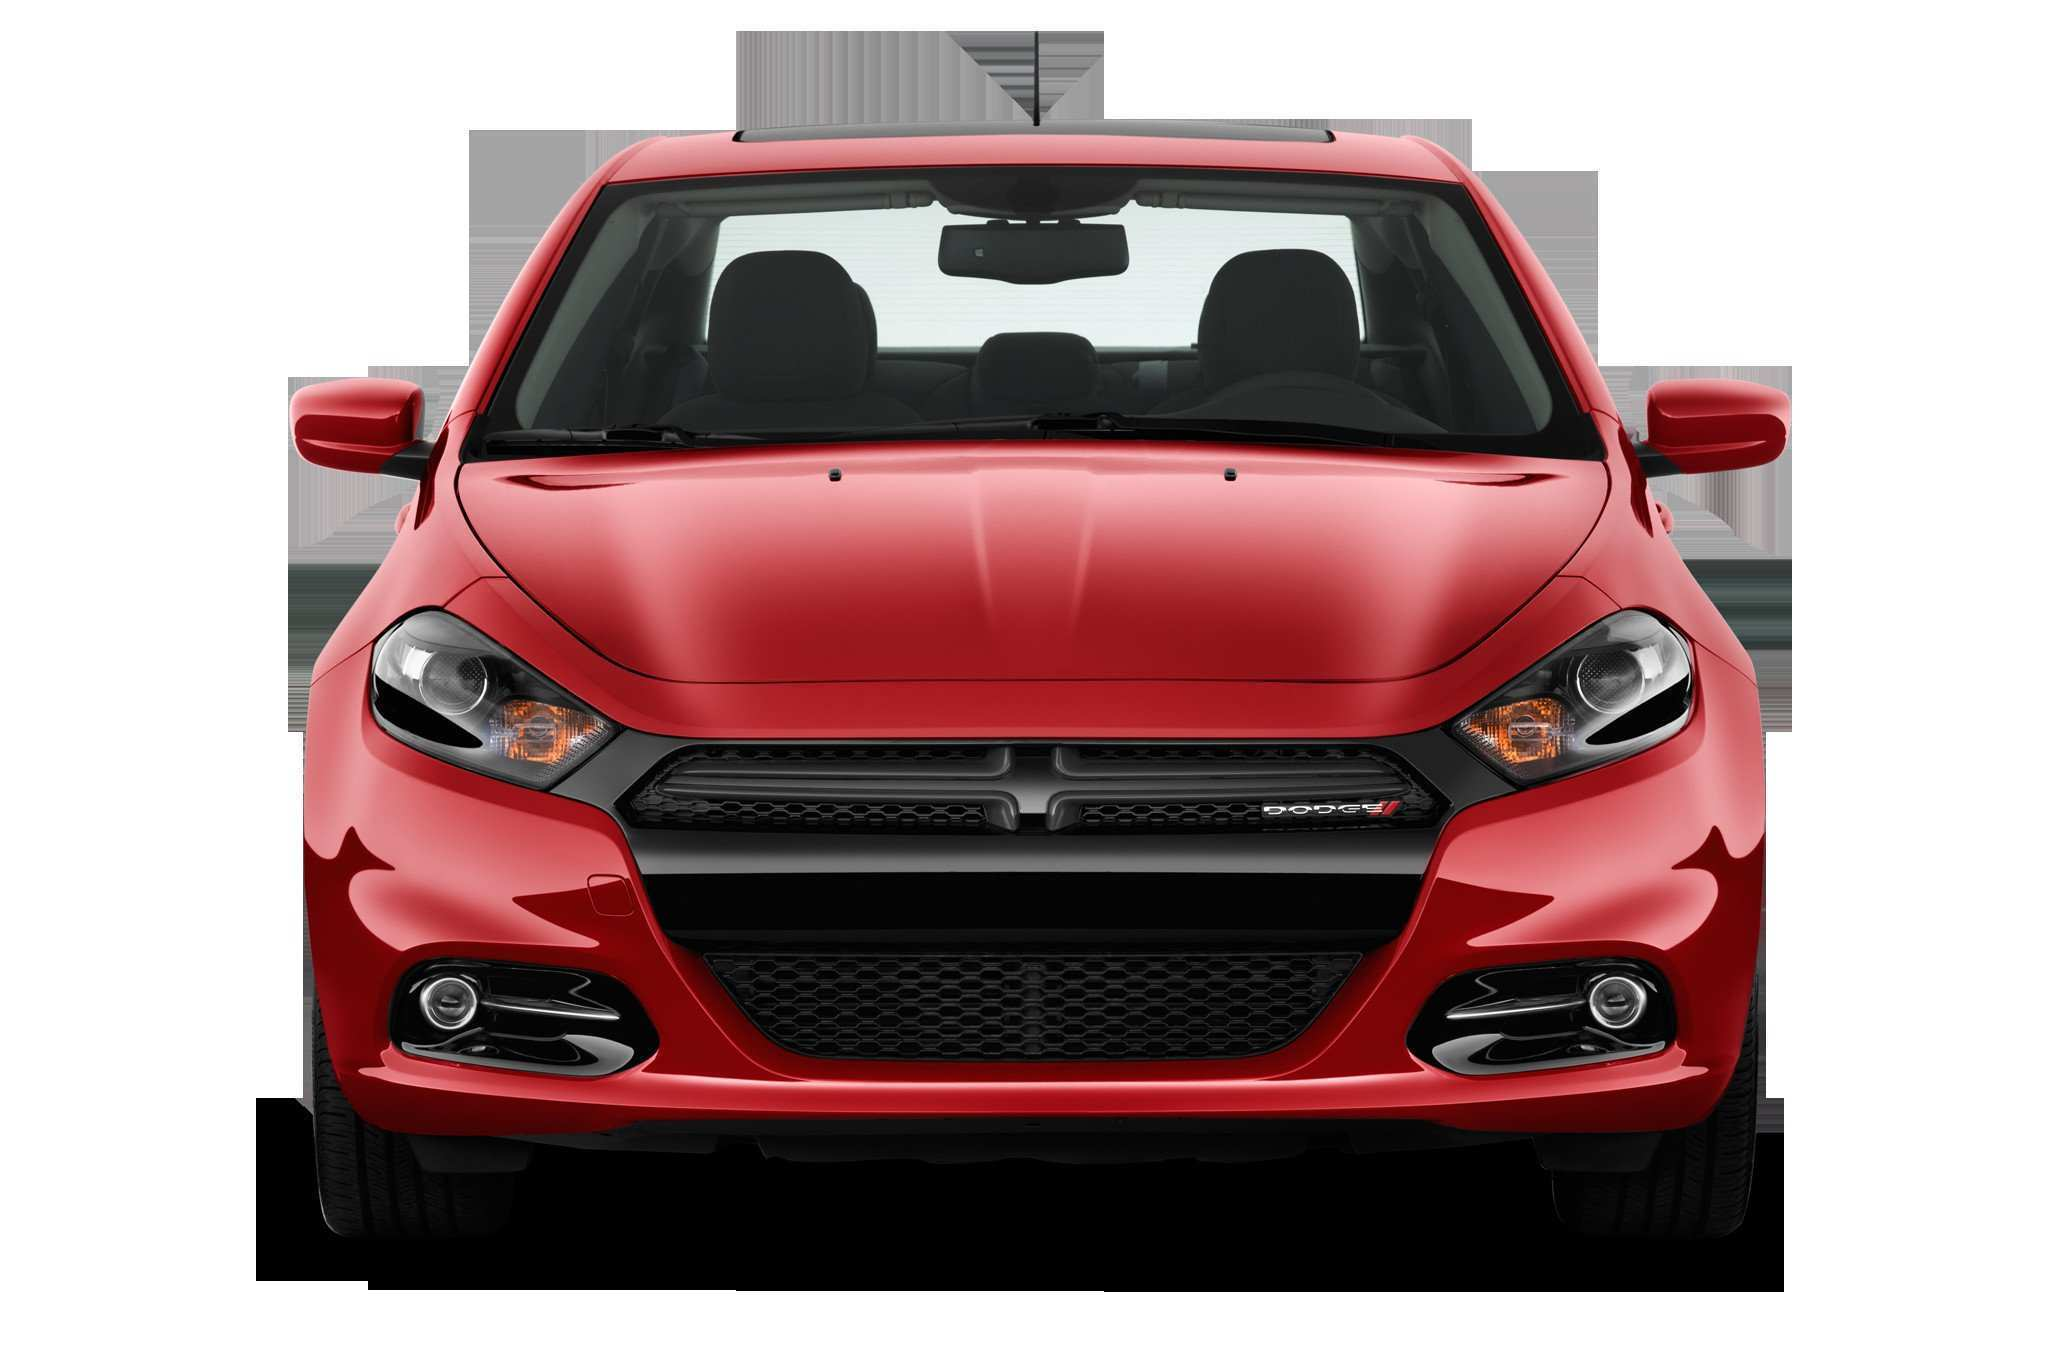 81 The 2020 Dodge Dart Srt4 Driving Art Release